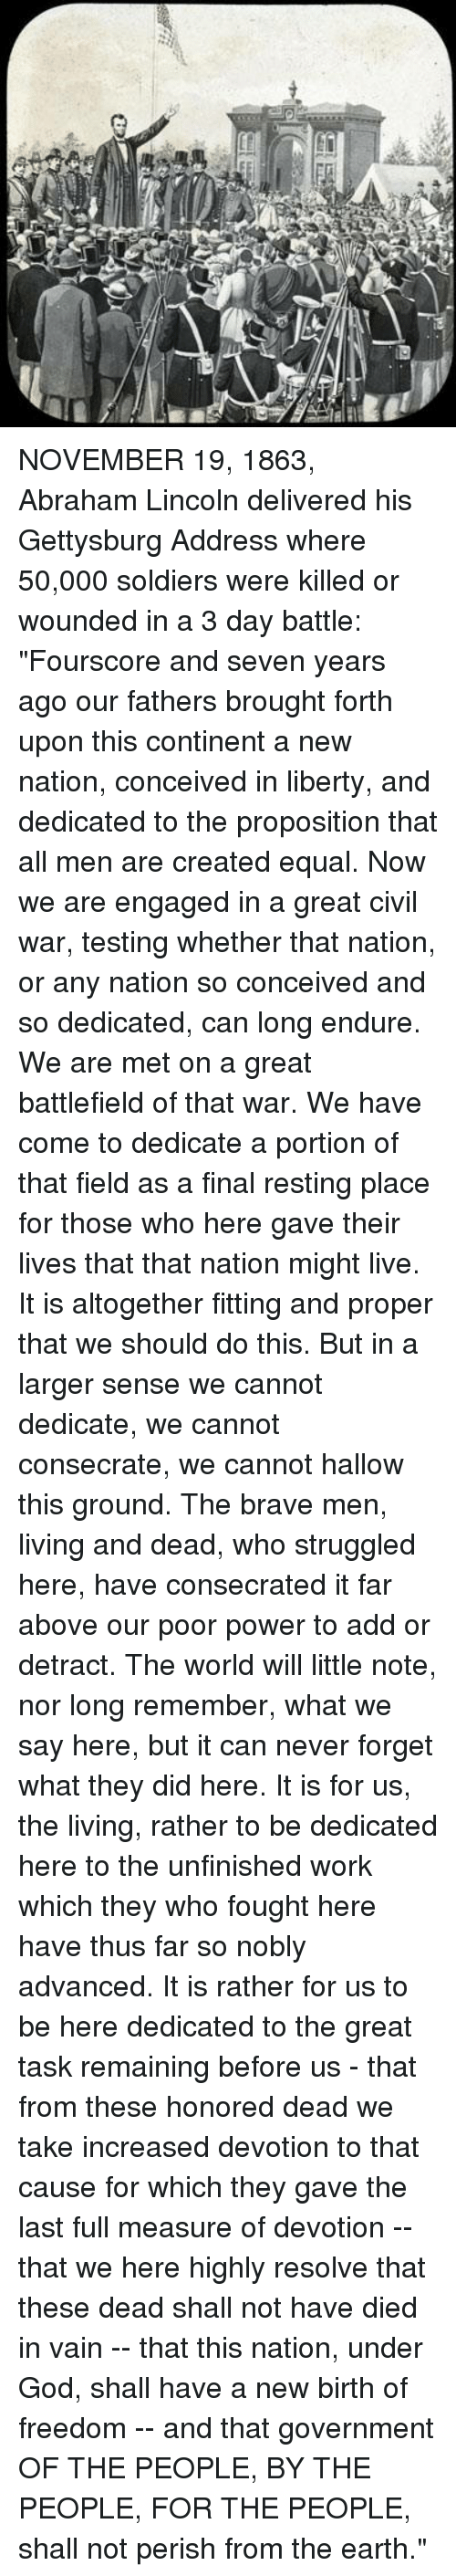 """proposition: 0 NOVEMBER 19, 1863, Abraham Lincoln delivered his Gettysburg Address where 50,000 soldiers were killed or wounded in a 3 day battle:  """"Fourscore and seven years ago our fathers brought forth upon this continent a new nation, conceived in liberty, and dedicated to the proposition that all men are created equal.  Now we are engaged in a great civil war, testing whether that nation, or any nation so conceived and so dedicated, can long endure.  We are met on a great battlefield of that war.  We have come to dedicate a portion of that field as a final resting place for those who here gave their lives that that nation might live.  It is altogether fitting and proper that we should do this.  But in a larger sense we cannot dedicate, we cannot consecrate, we cannot hallow this ground.  The brave men, living and dead, who struggled here, have consecrated it far above our poor power to add or detract.  The world will little note, nor long remember, what we say here, but it can never forget what they did here.  It is for us, the living, rather to be dedicated here to the unfinished work which they who fought here have thus far so nobly advanced.  It is rather for us to be here dedicated to the great task remaining before us -  that from these honored dead we take increased devotion to that cause for which they gave the last full measure of devotion --  that we here highly resolve that these dead shall not have died in vain --  that this nation, under God, shall have a new birth of freedom -- and  that government OF THE PEOPLE, BY THE PEOPLE, FOR THE PEOPLE, shall not perish from the earth."""""""